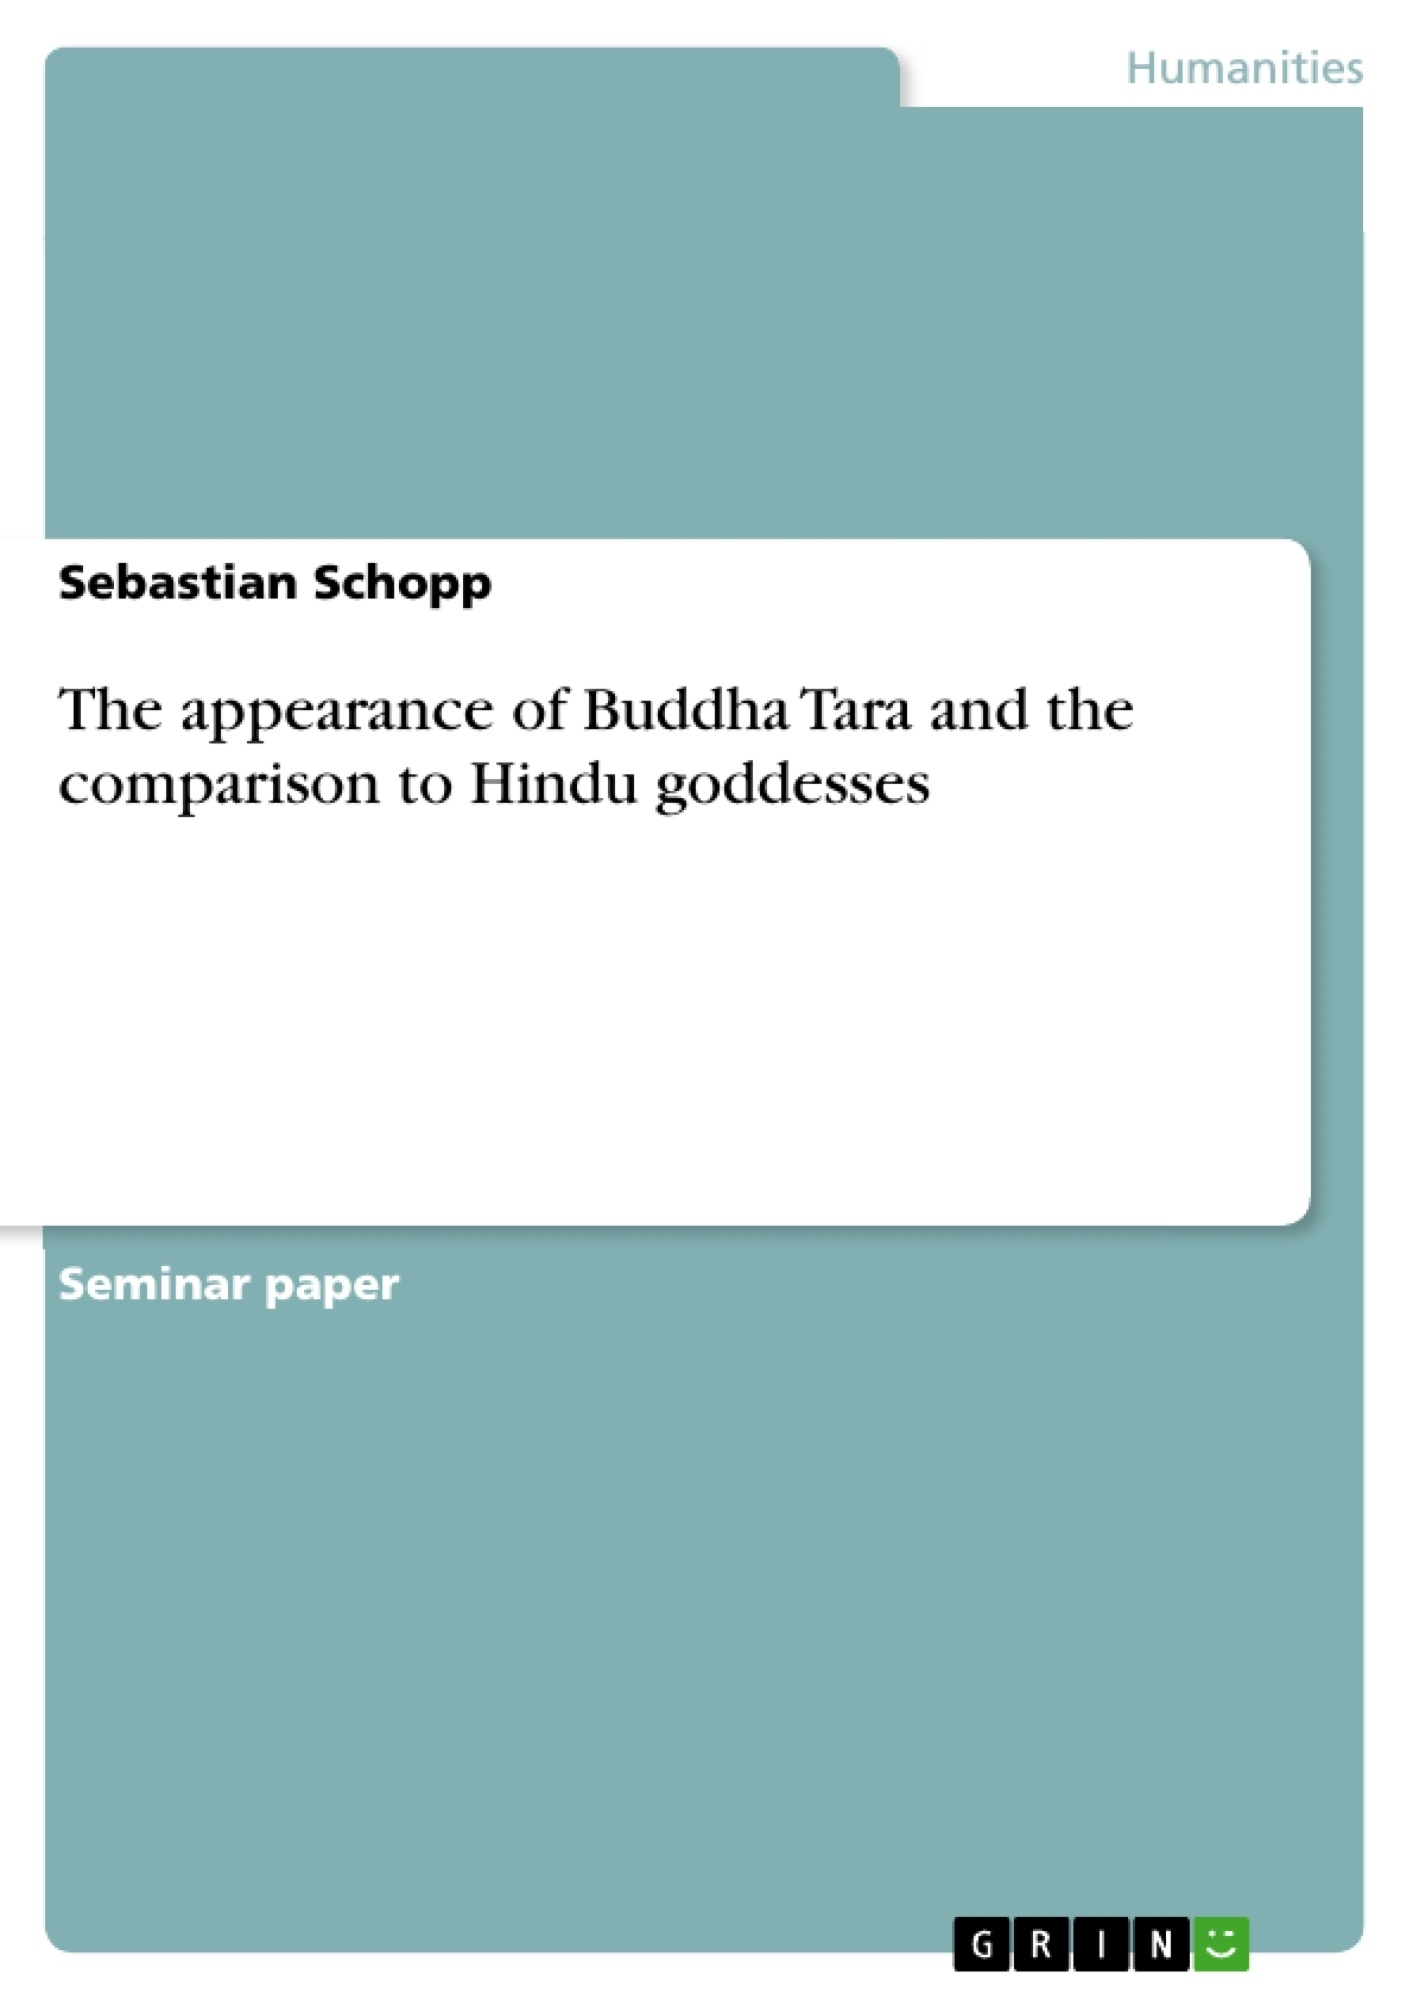 Title: The appearance of Buddha Tara and the comparison to Hindu goddesses